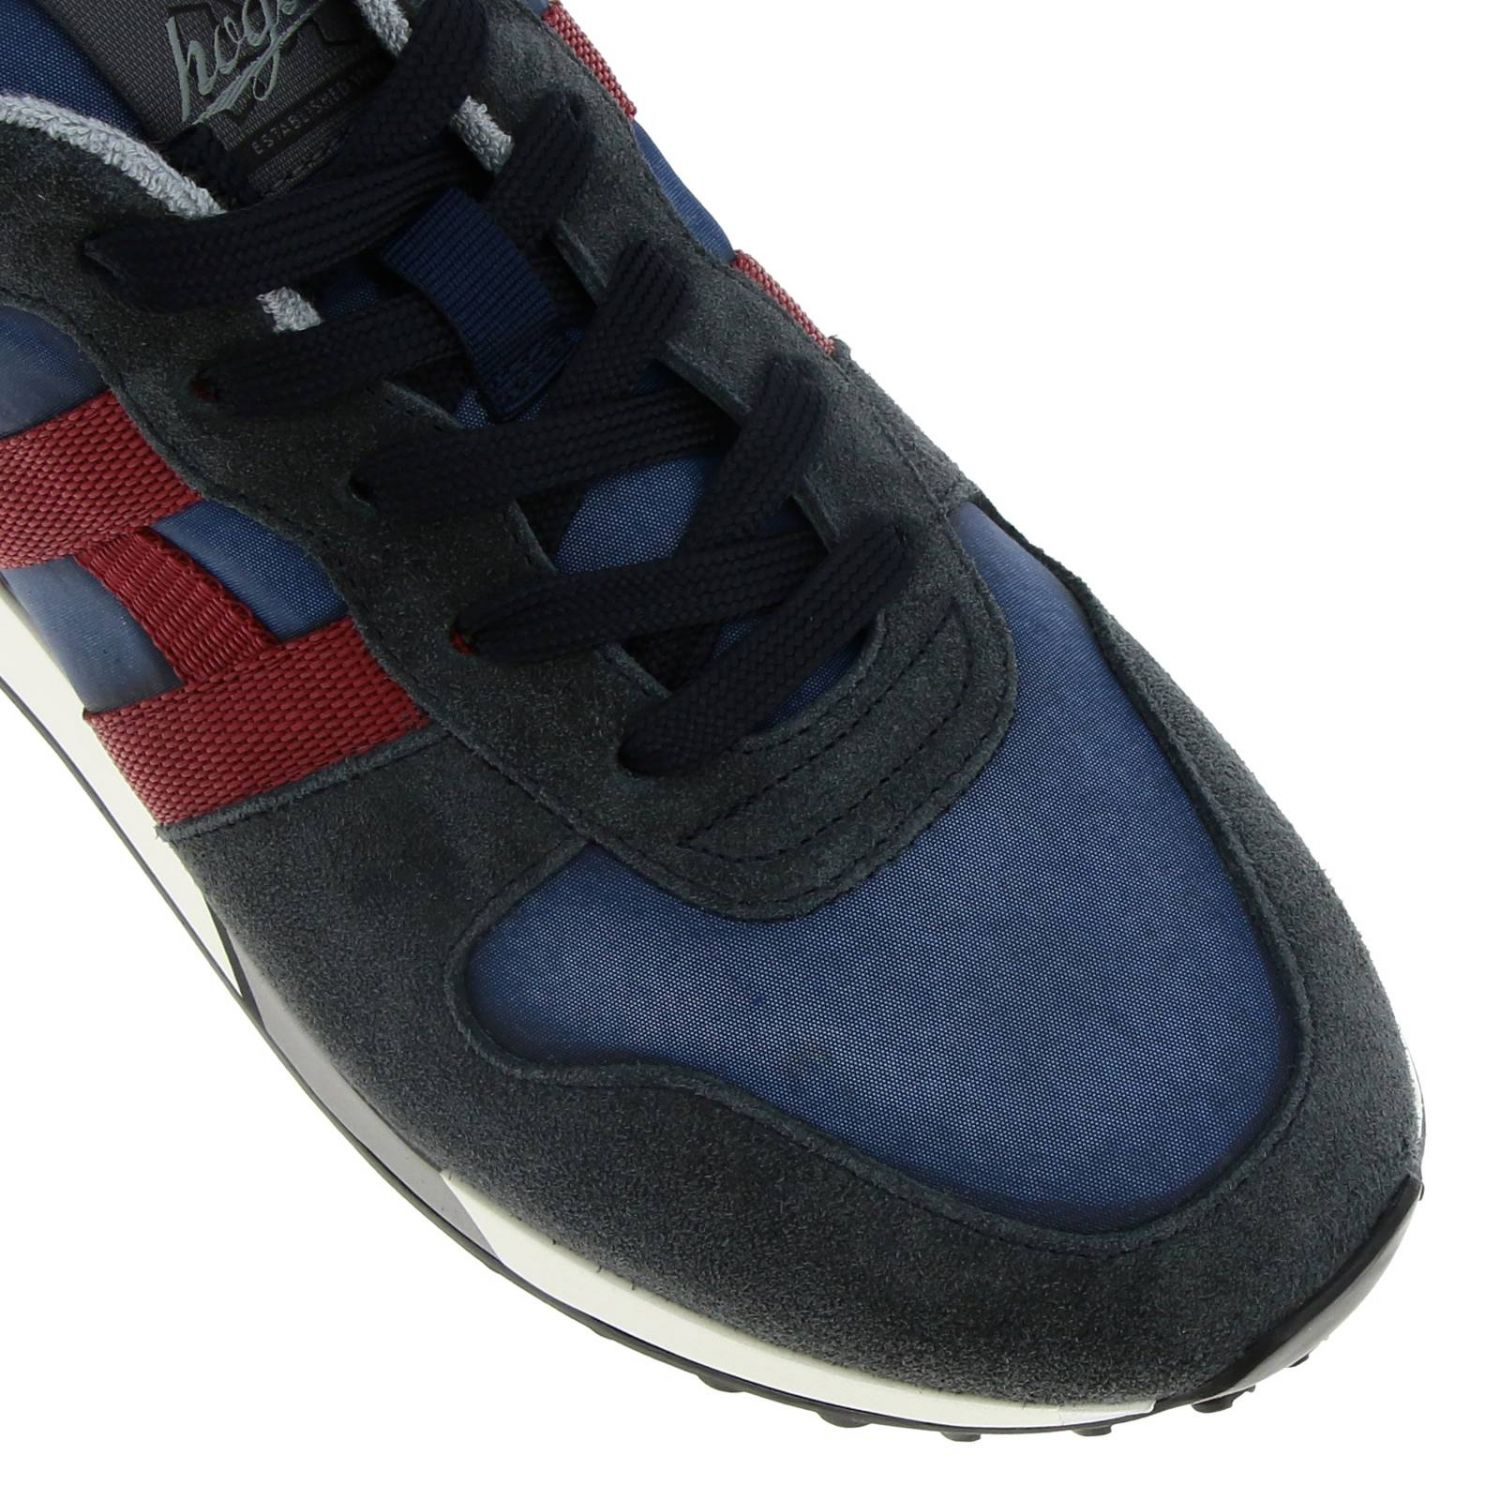 Sneakers 383 split leather and fabric Hogan with monochrome H blue 3